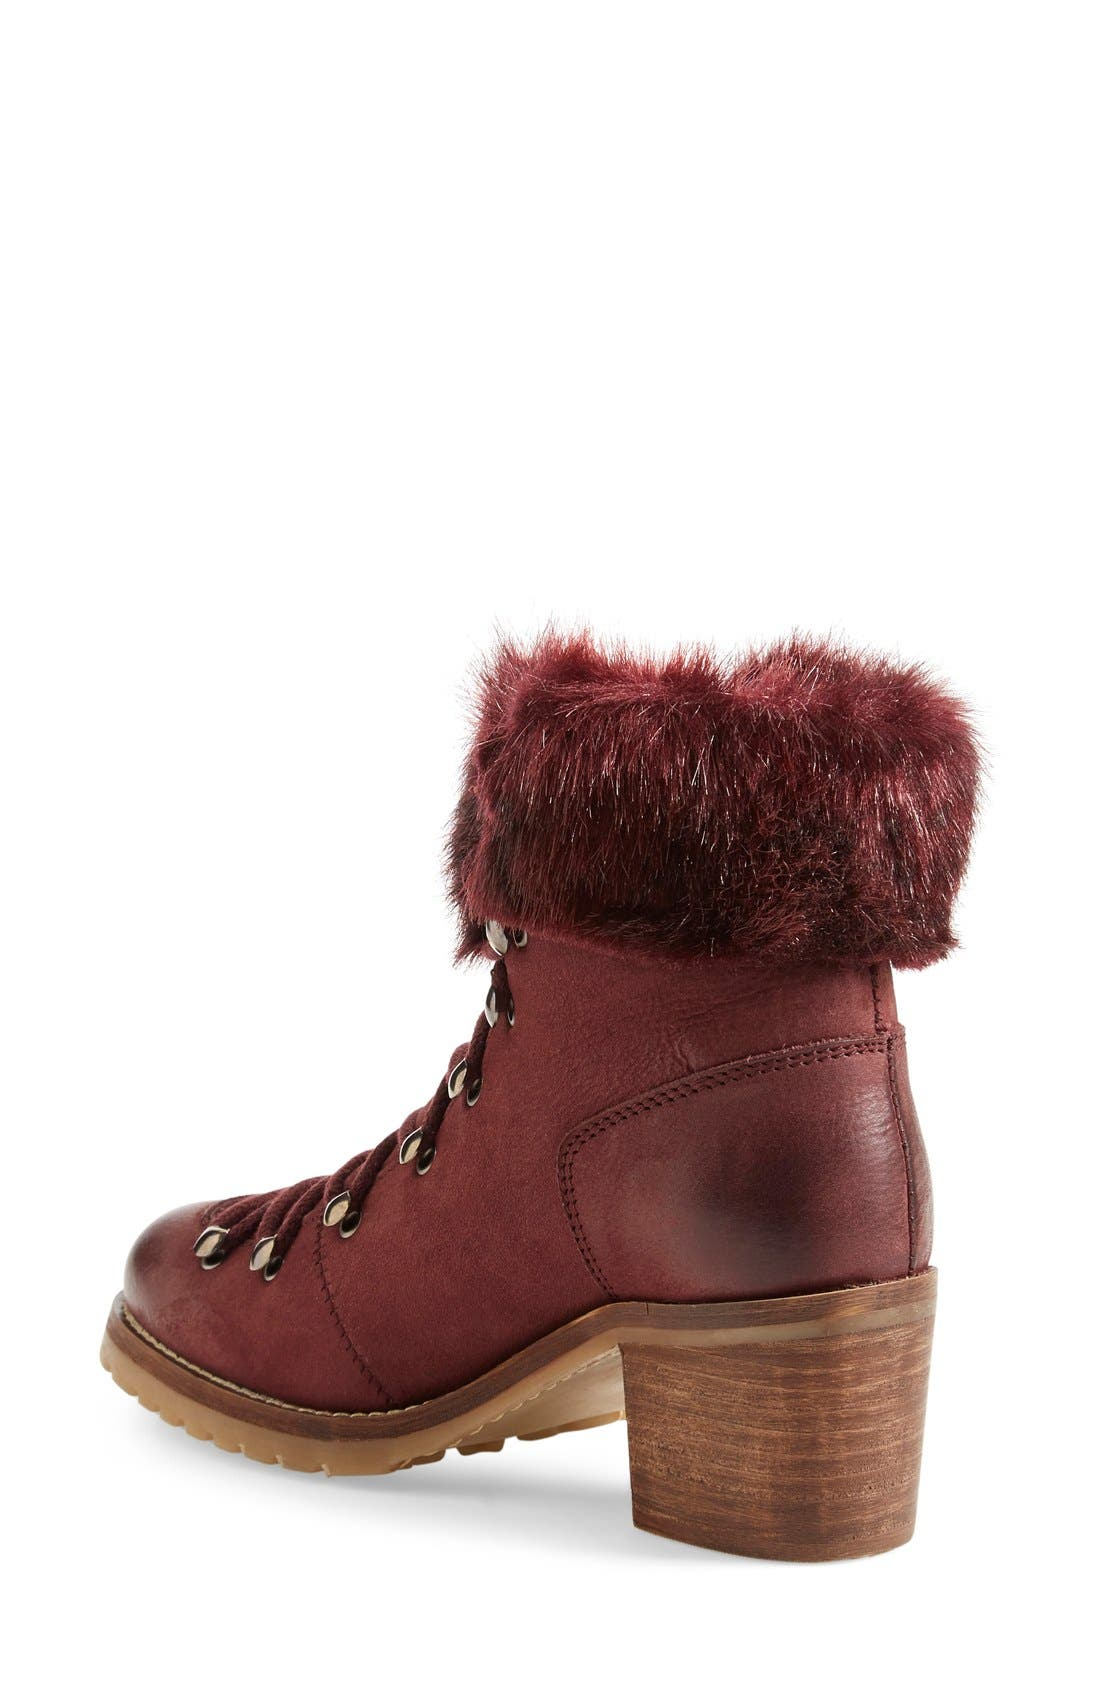 Alternate Image 2  - Steve Madden 'Huck' Lace-Up Bootie (Women)